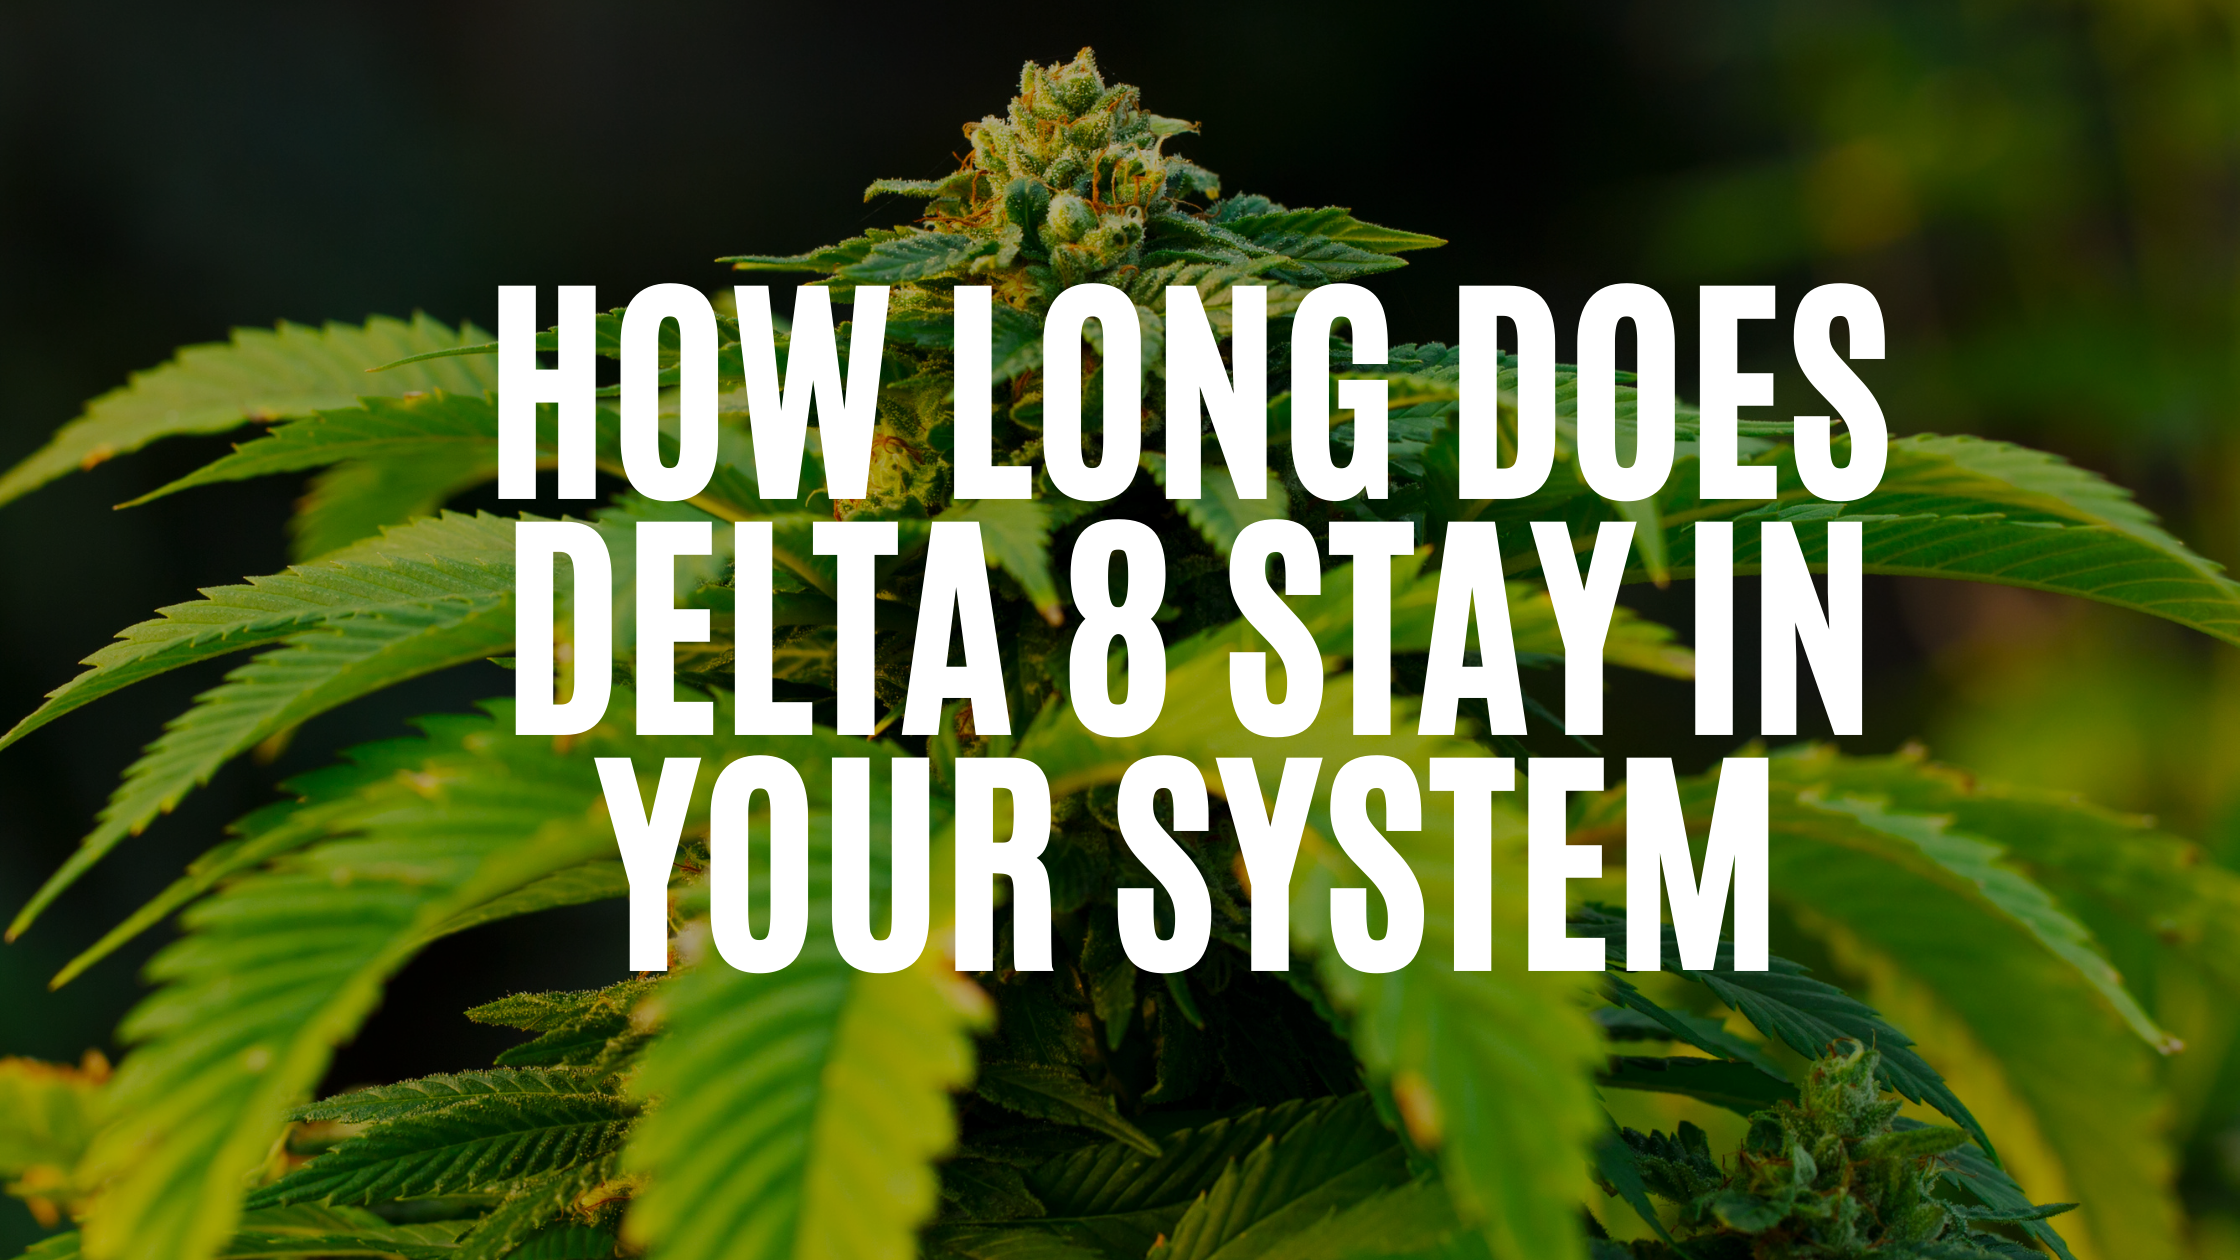 How Long Does Delta 8 Stay In Your System?